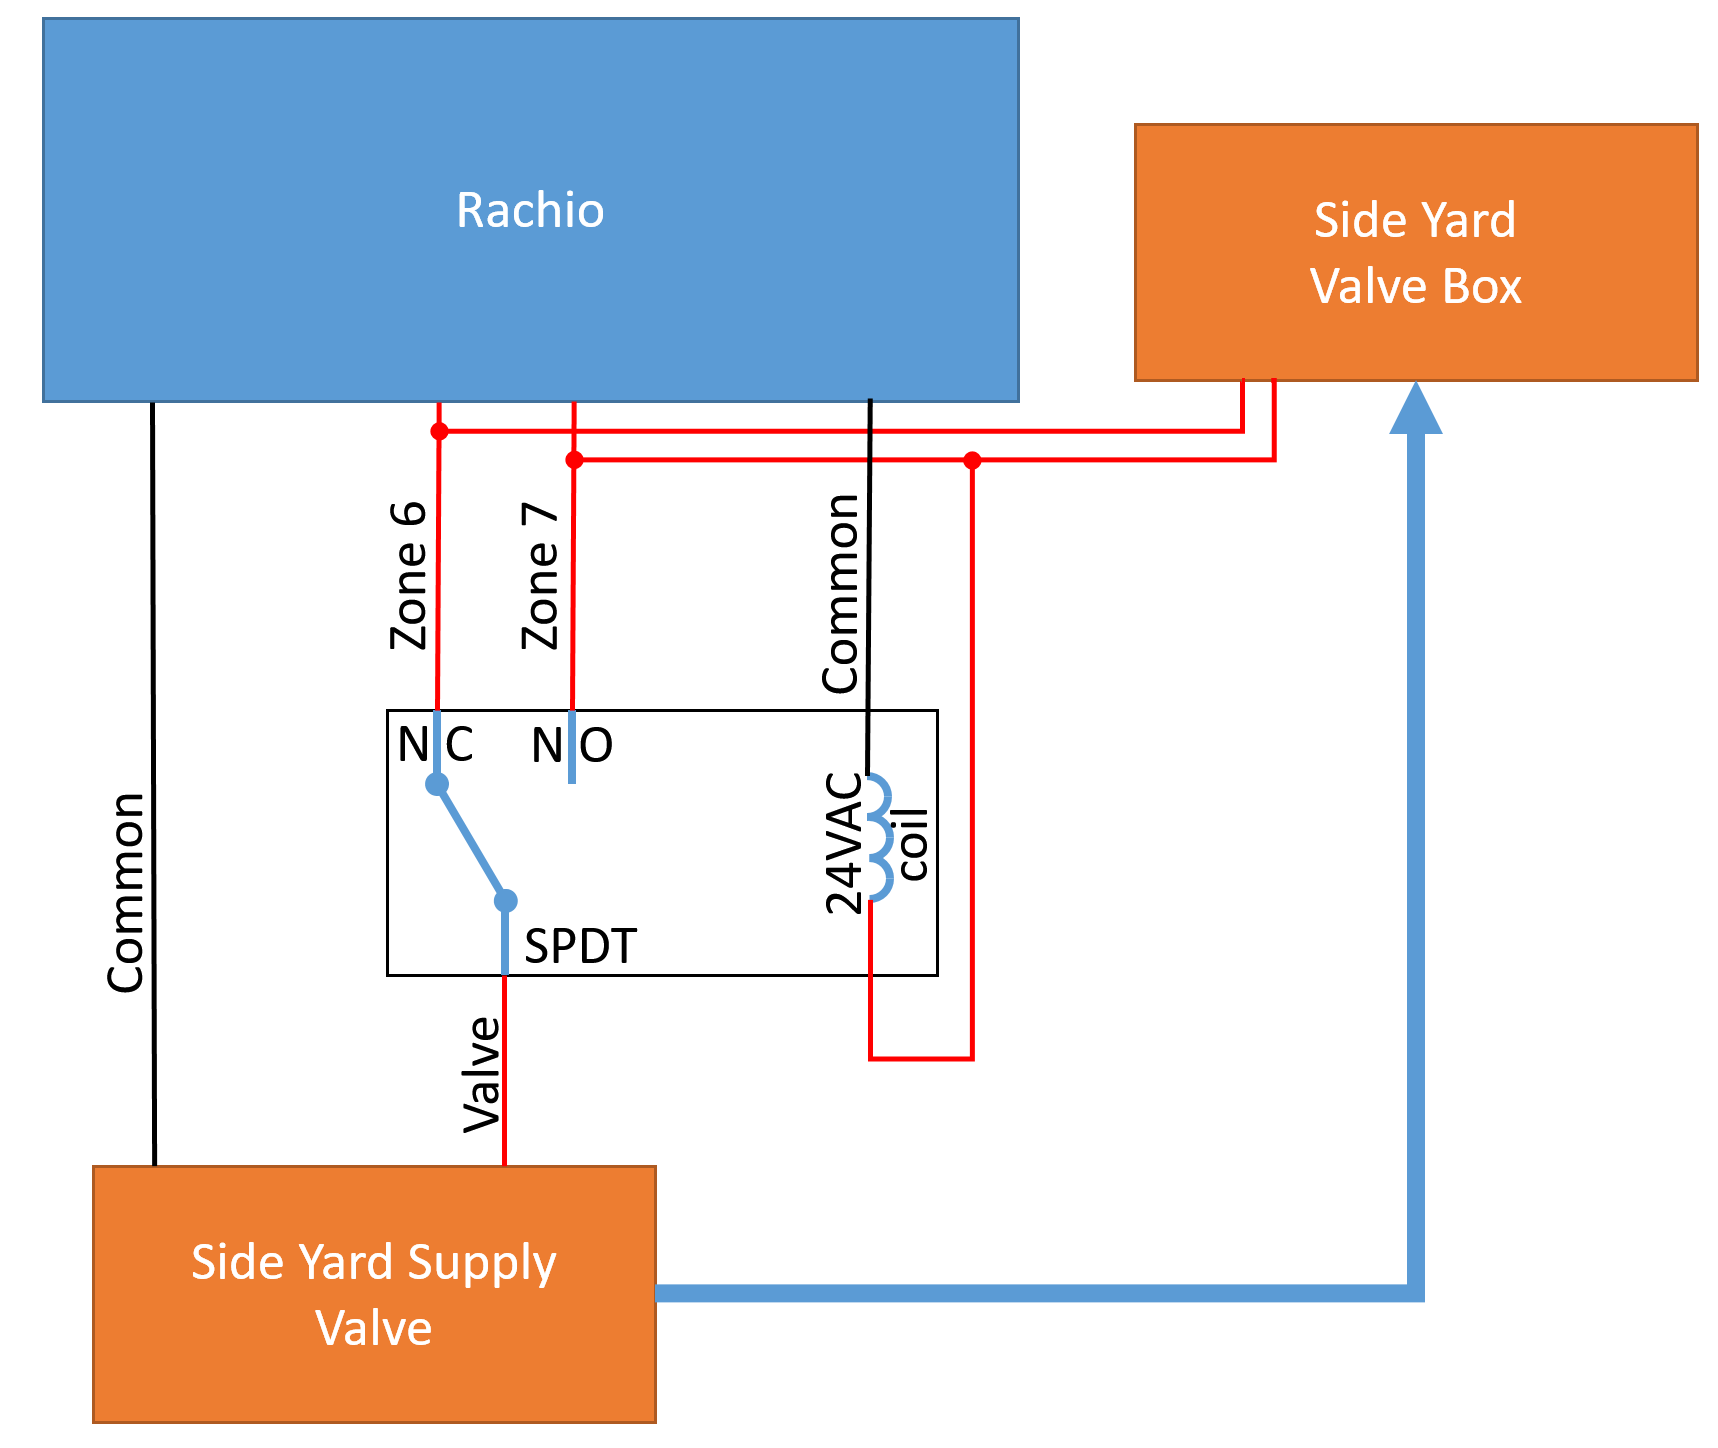 Master Valve Only On Specific Zones Product Suggestions Rachio Common Terminal In Relay This Configuration Which Ever Zone Is Connected To No Also Drives The Coil Example Its 7 But Can Be Any Other As Long